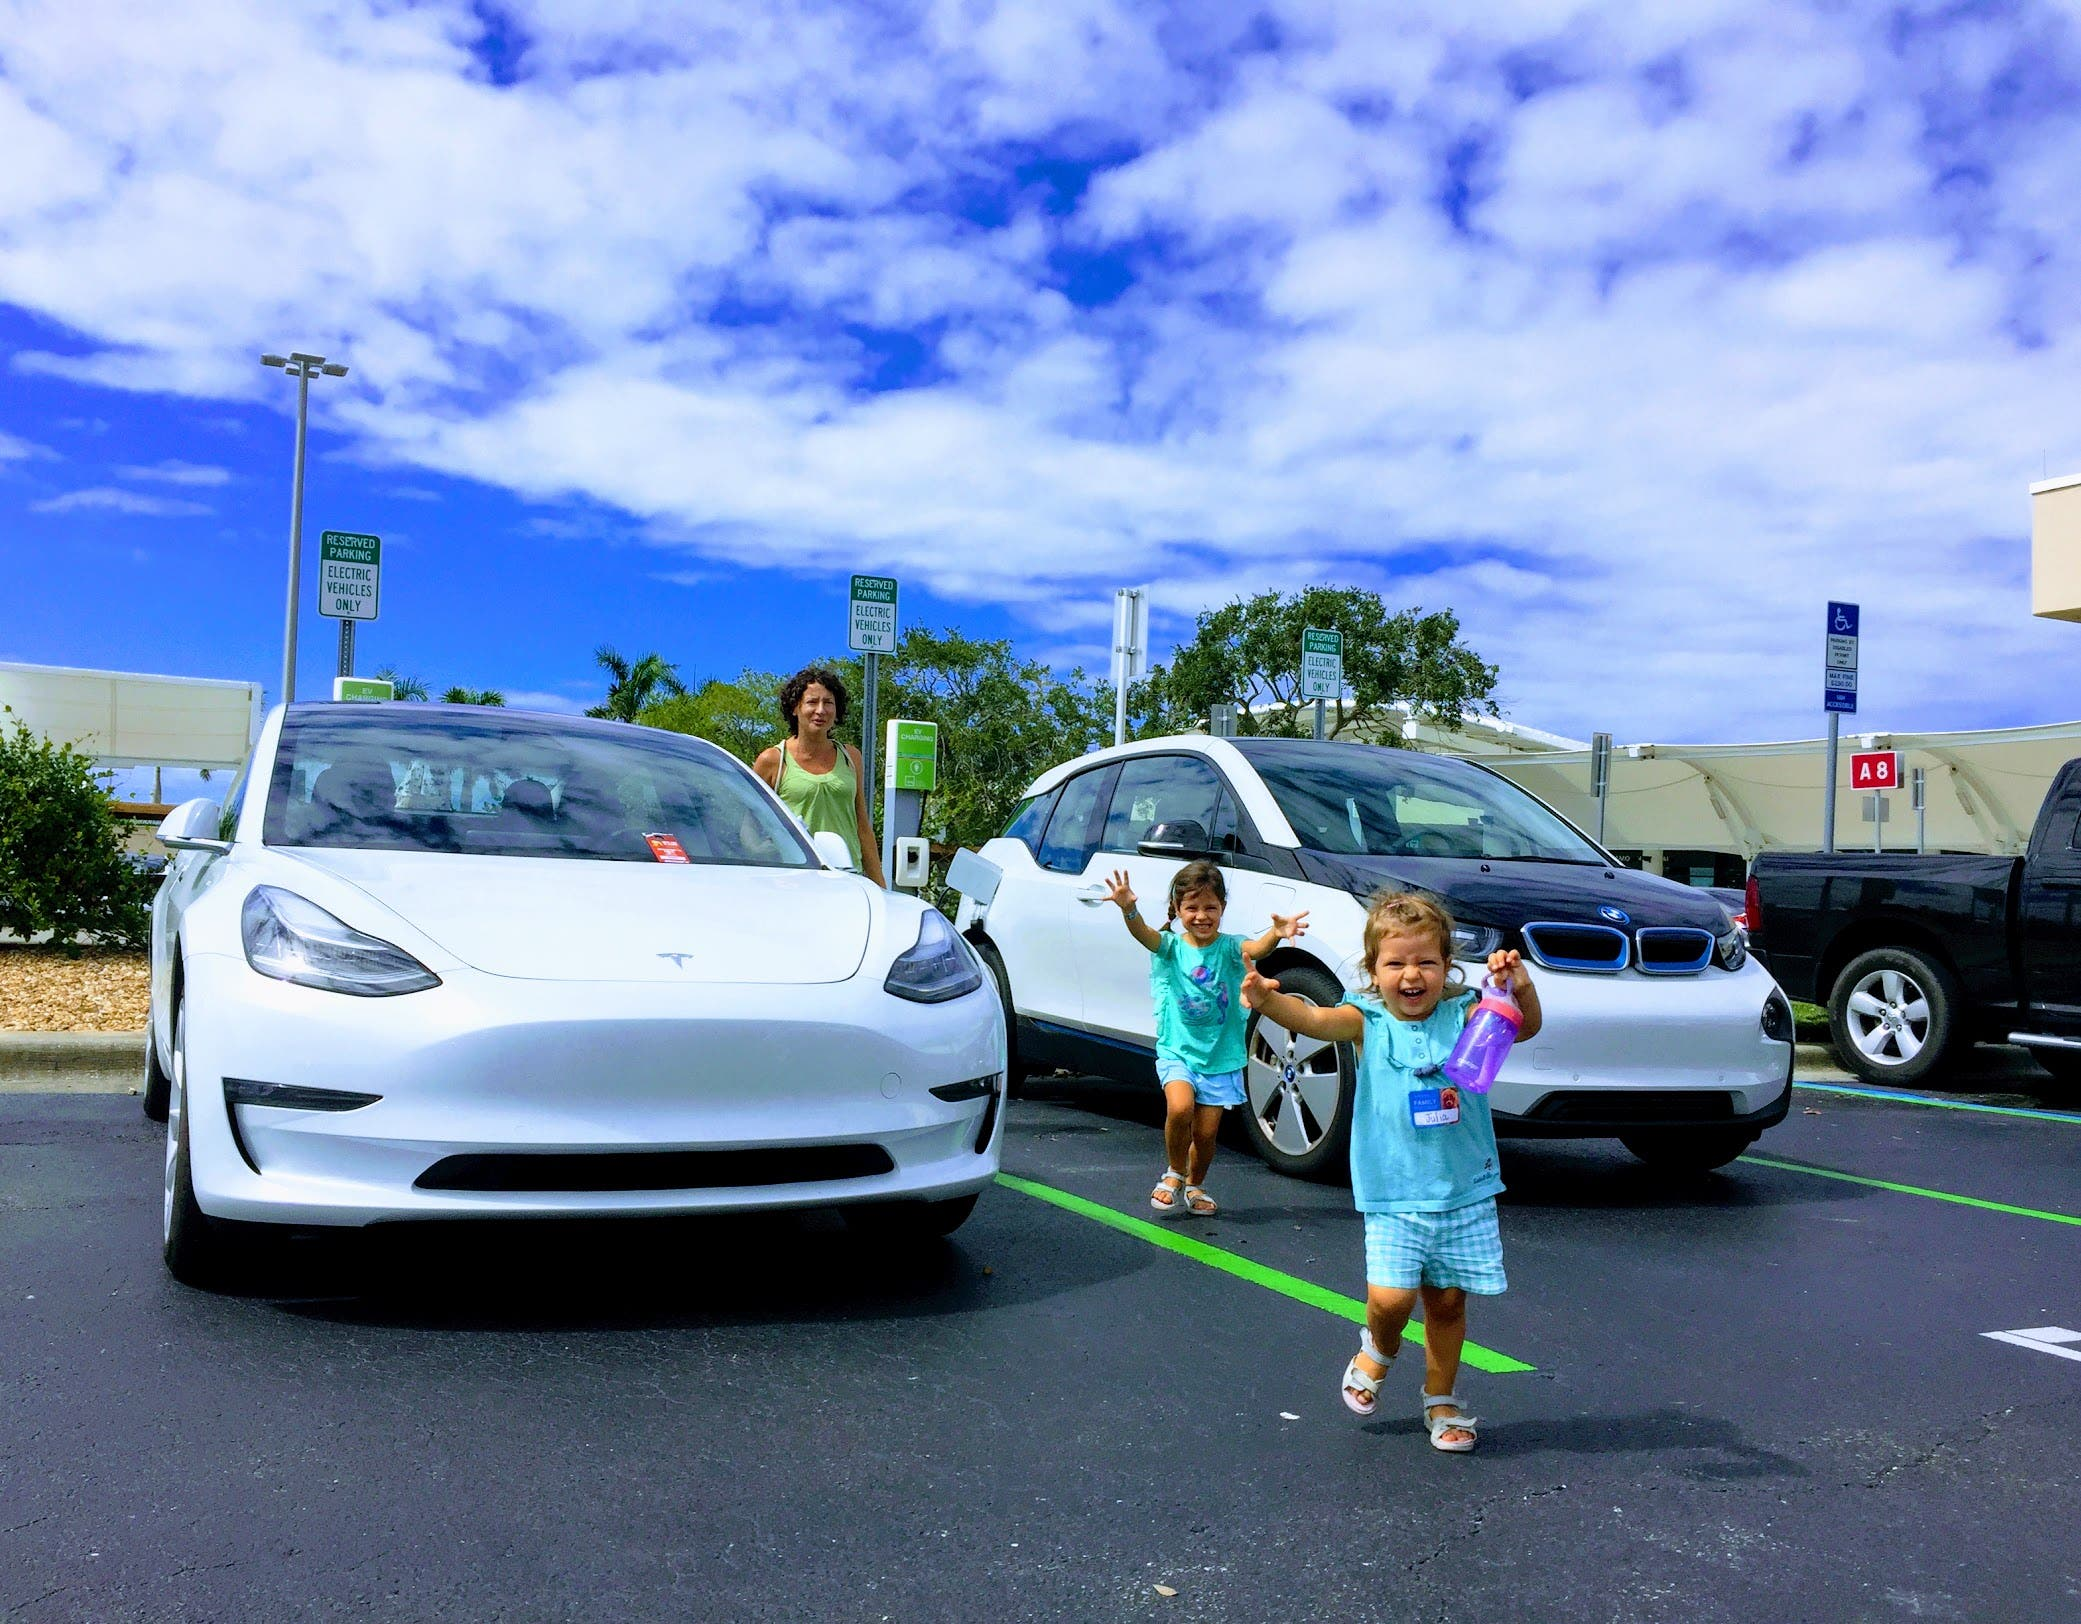 Cleantechnica Has Had The Lucky Opportunity To Review A Freakin Ton Of Electric Vehicles This Past Year And Many More In Previous Years